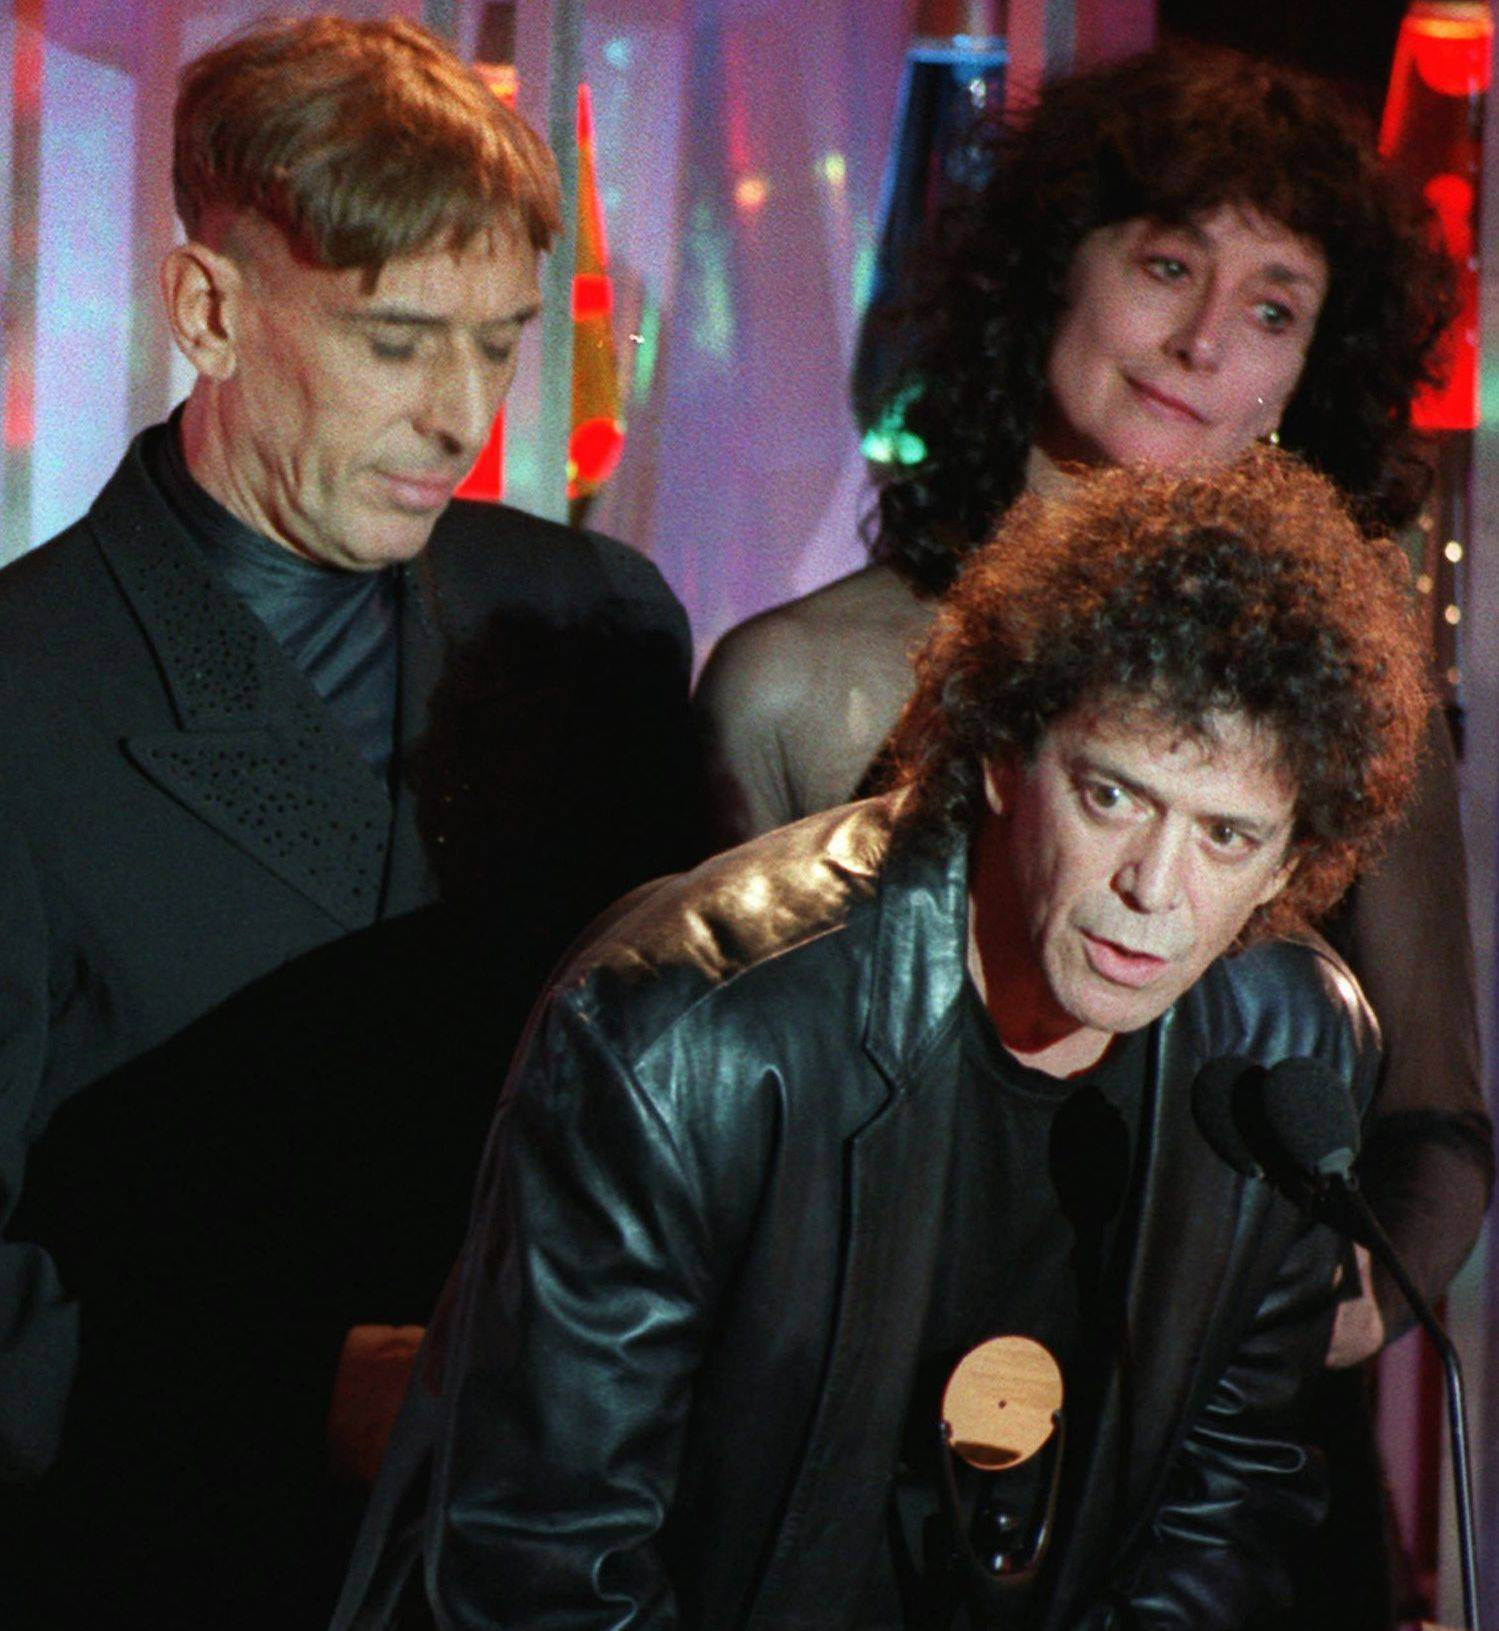 On Jan. 17, 1996, Lou Reed takes the podium as the Velvet Underground is inducted into the Rock and Roll Hall of Fame. Band mate John Cale is at left' at right is Martha Morrison, accepting for late band member Sterling Morrison.